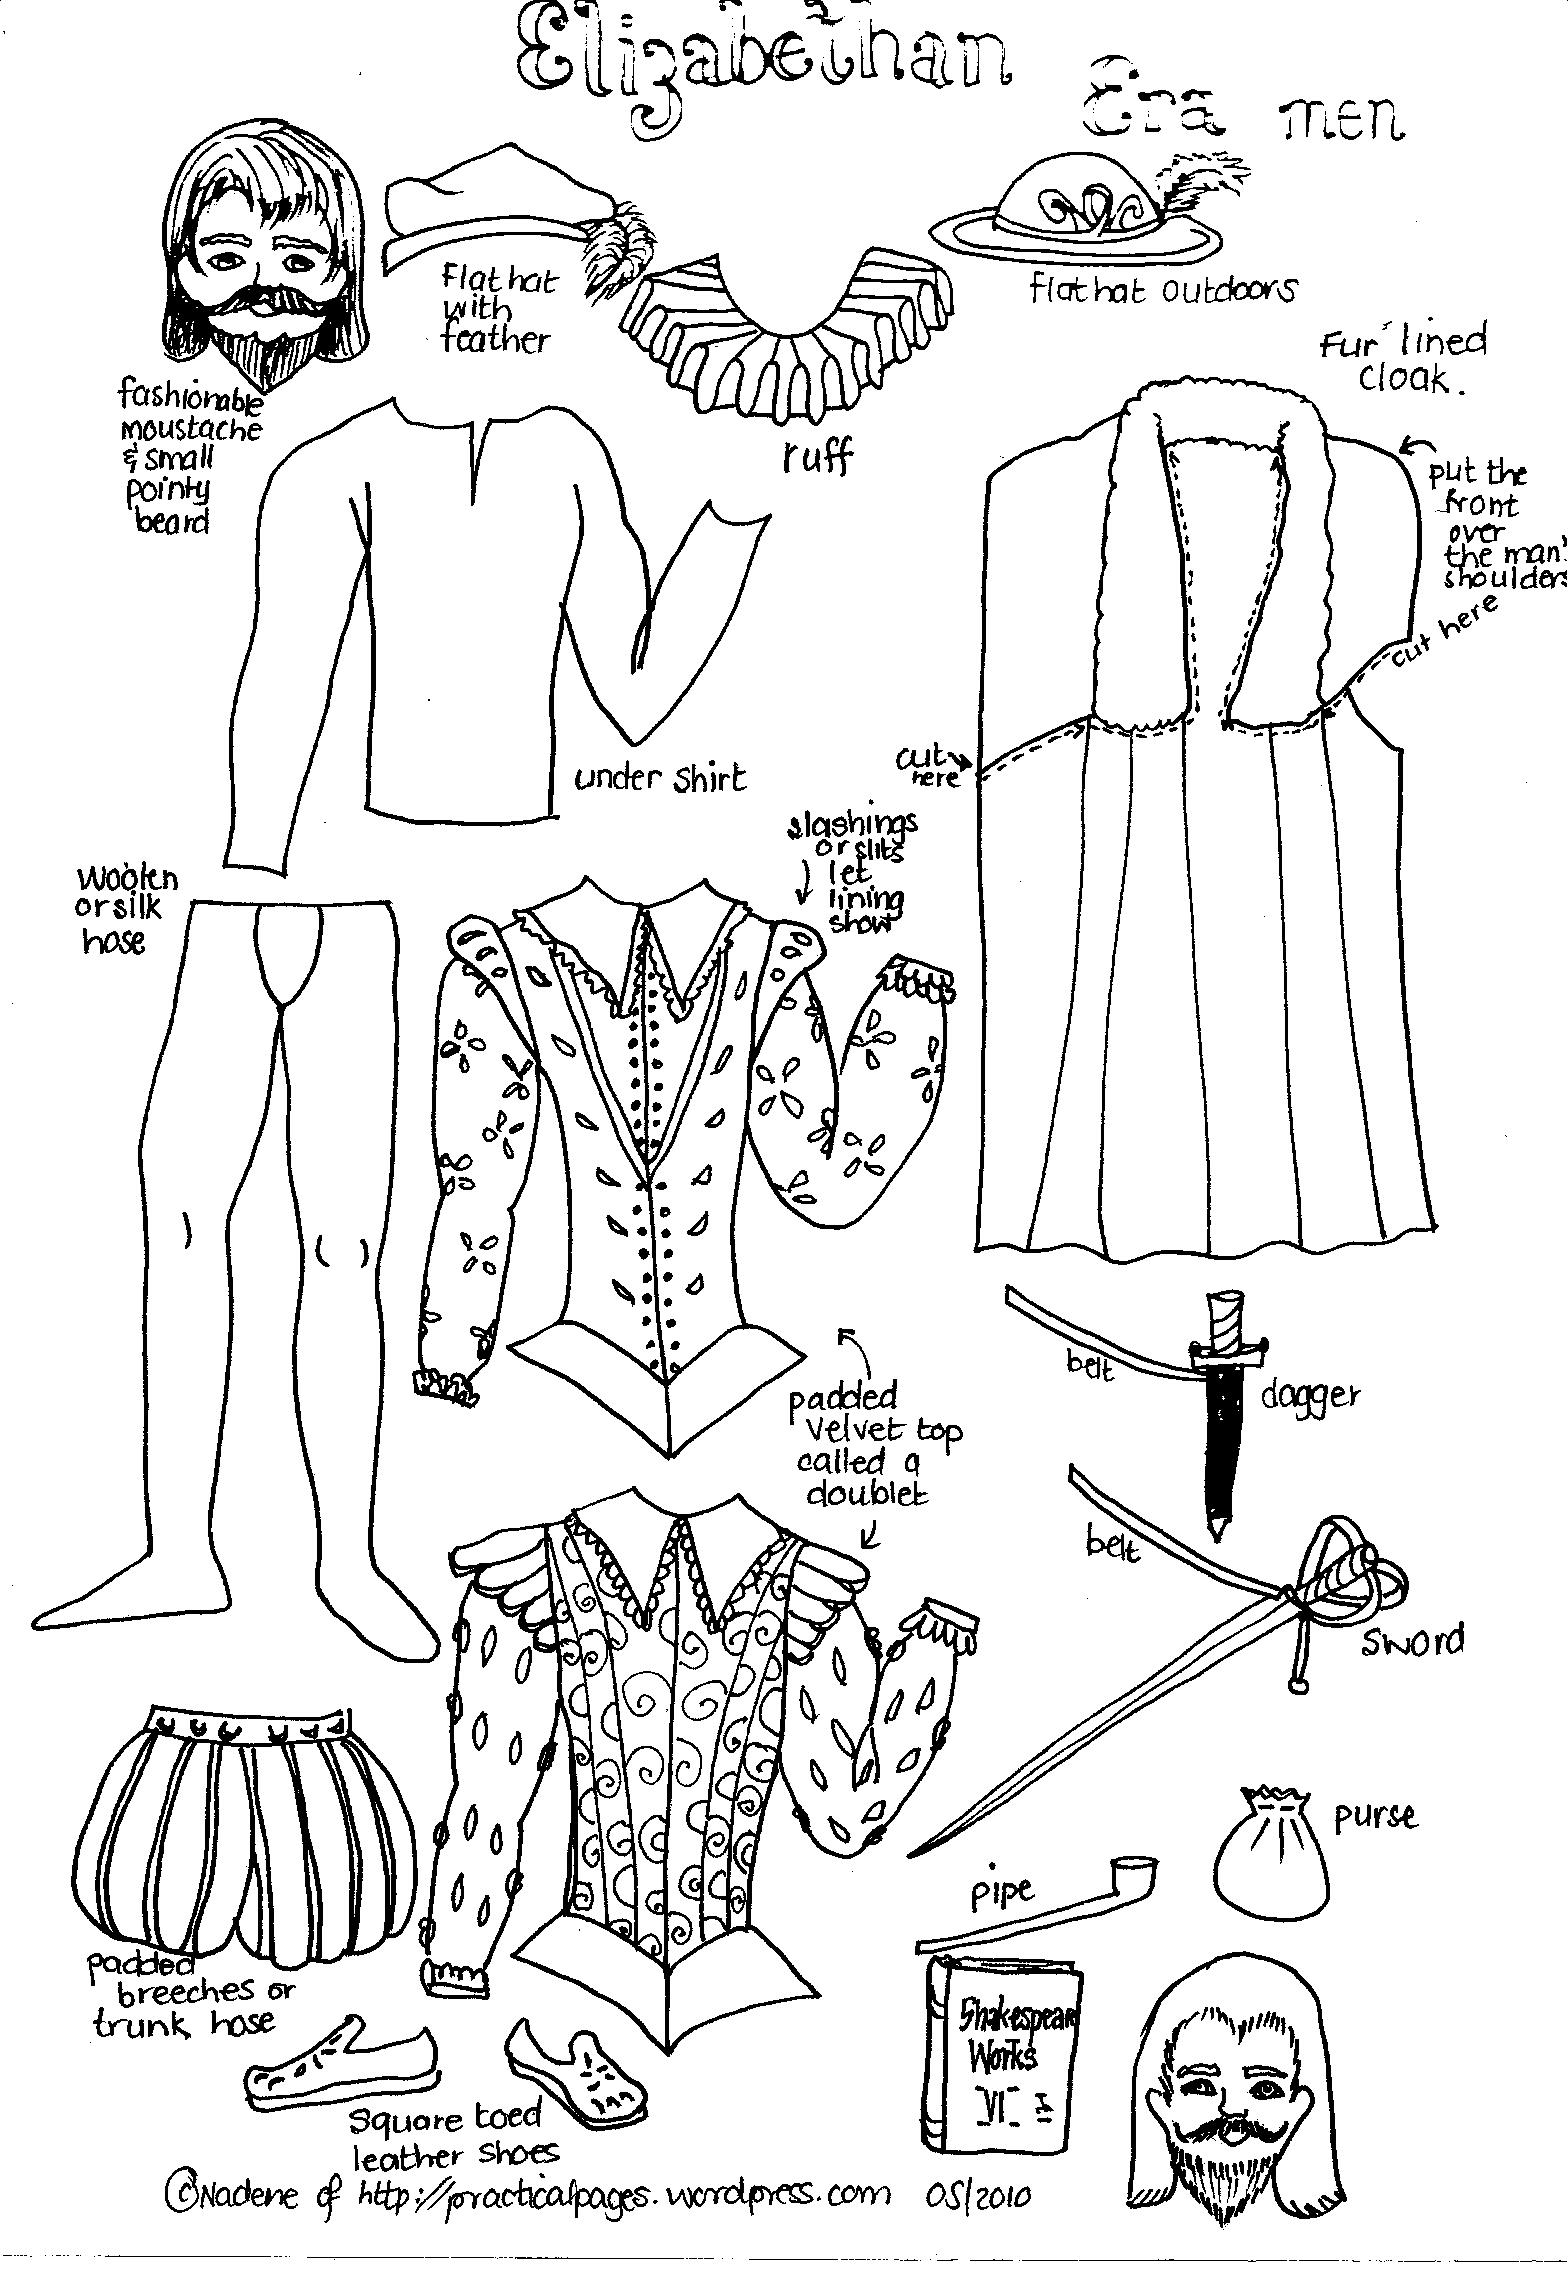 elizabethan coloring pages - photo#20